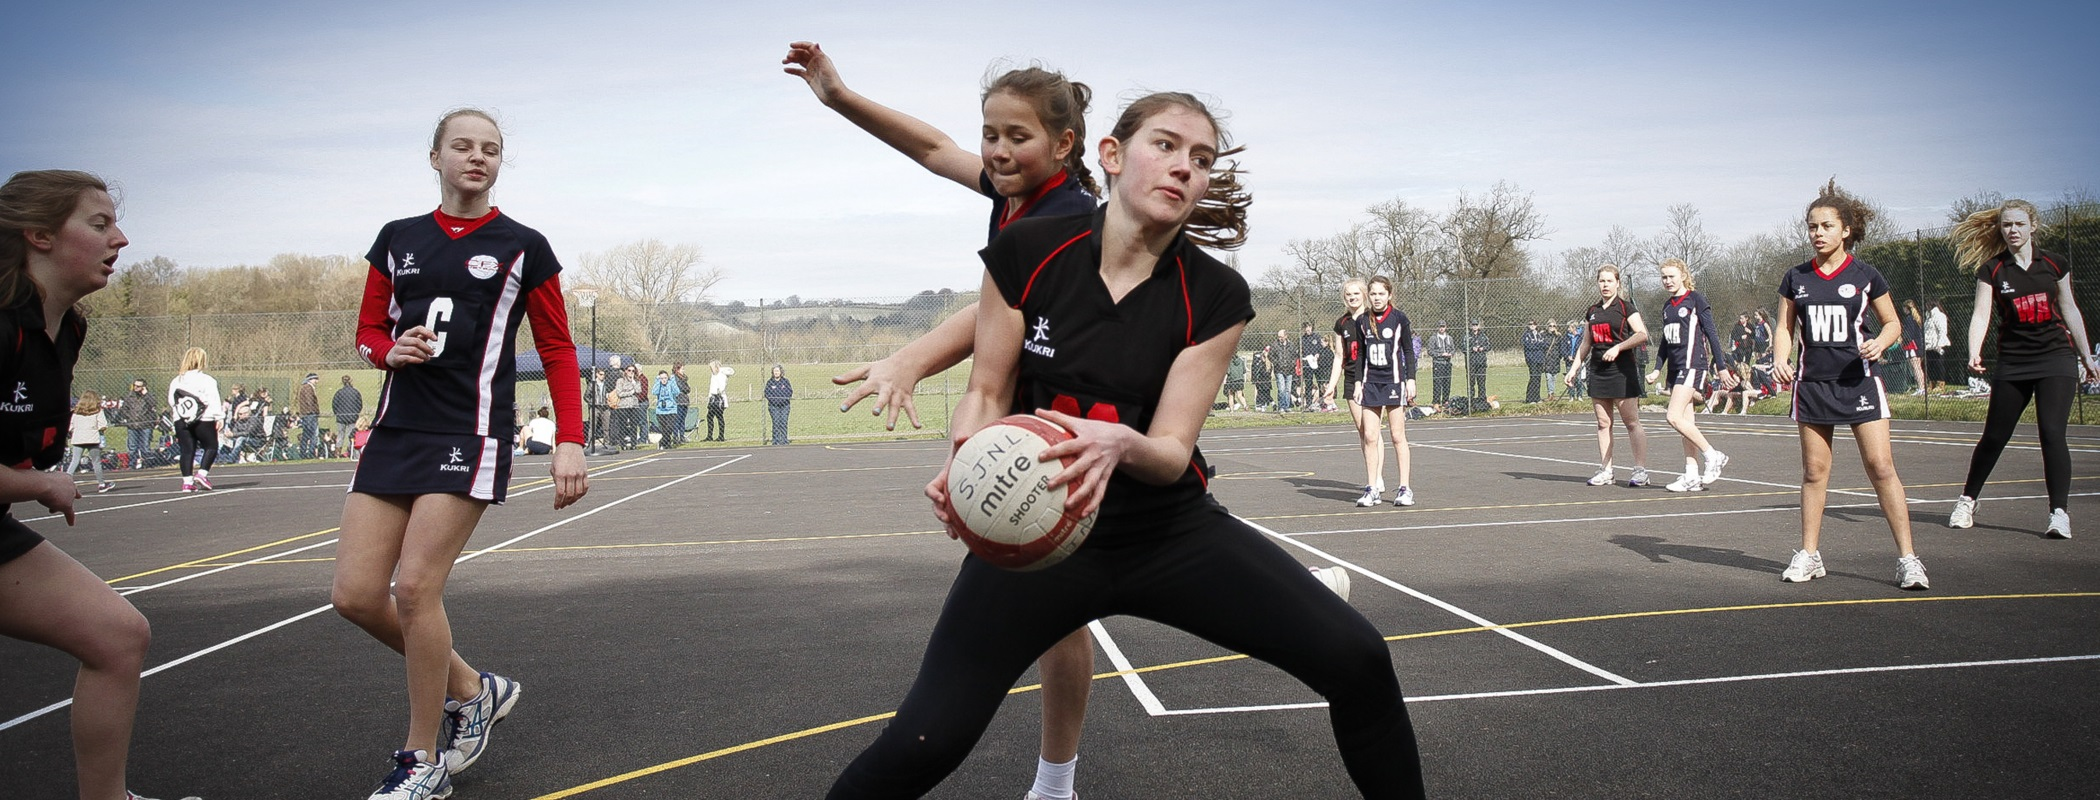 Langton Green Netball - for girls in years 3 to 13...